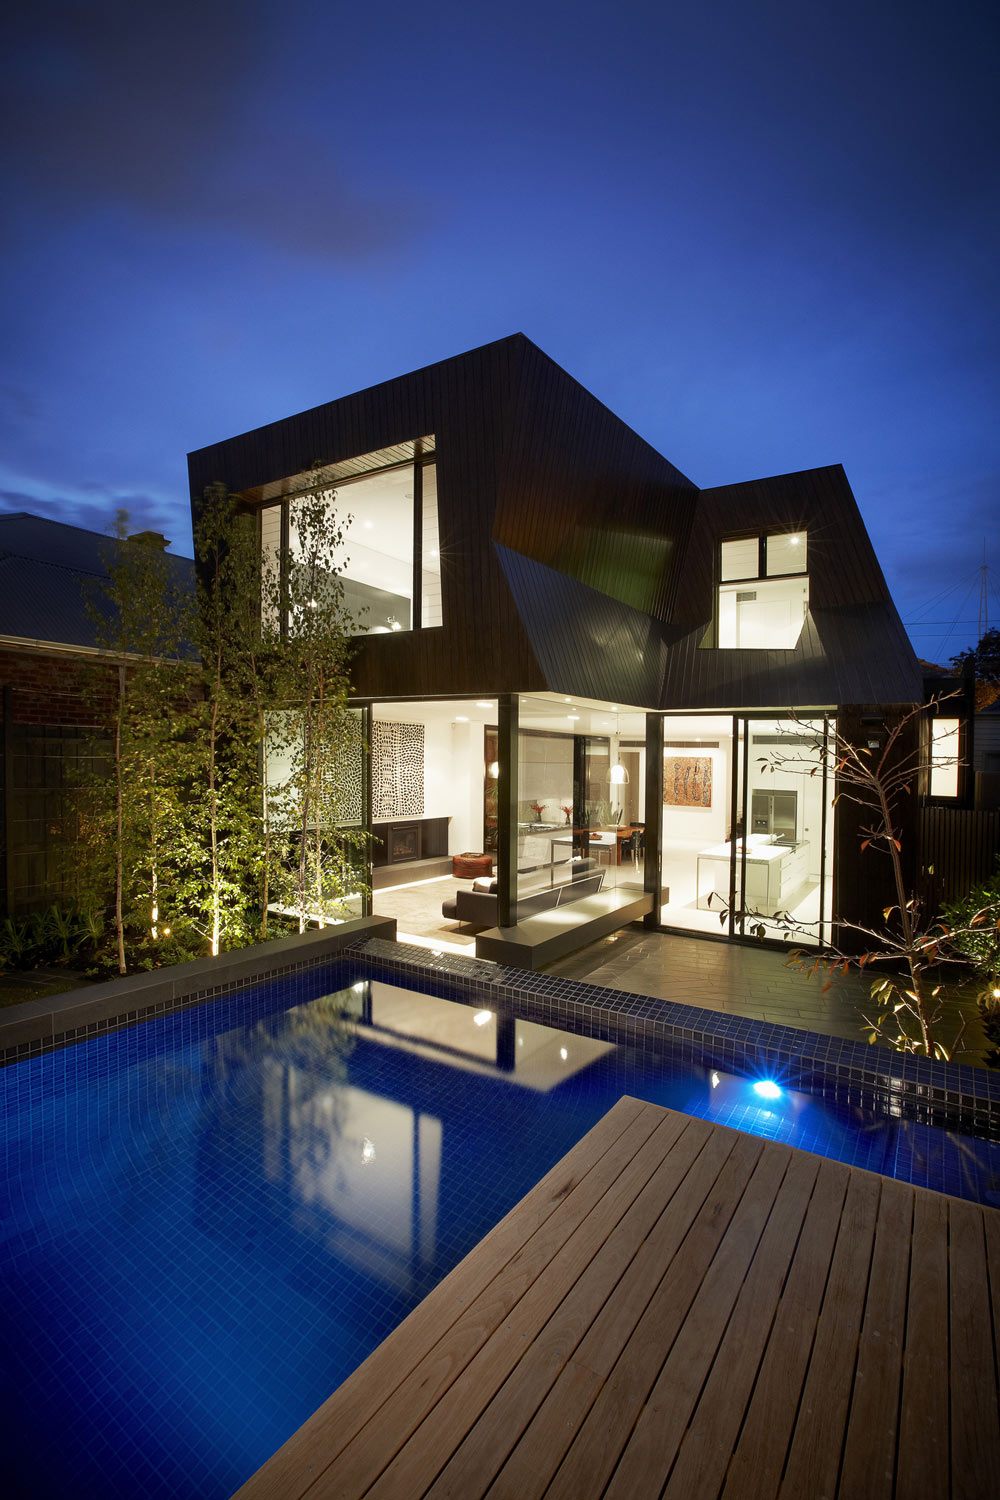 Enclave house in melbourne australia by bkk architects for Beach house designs melbourne